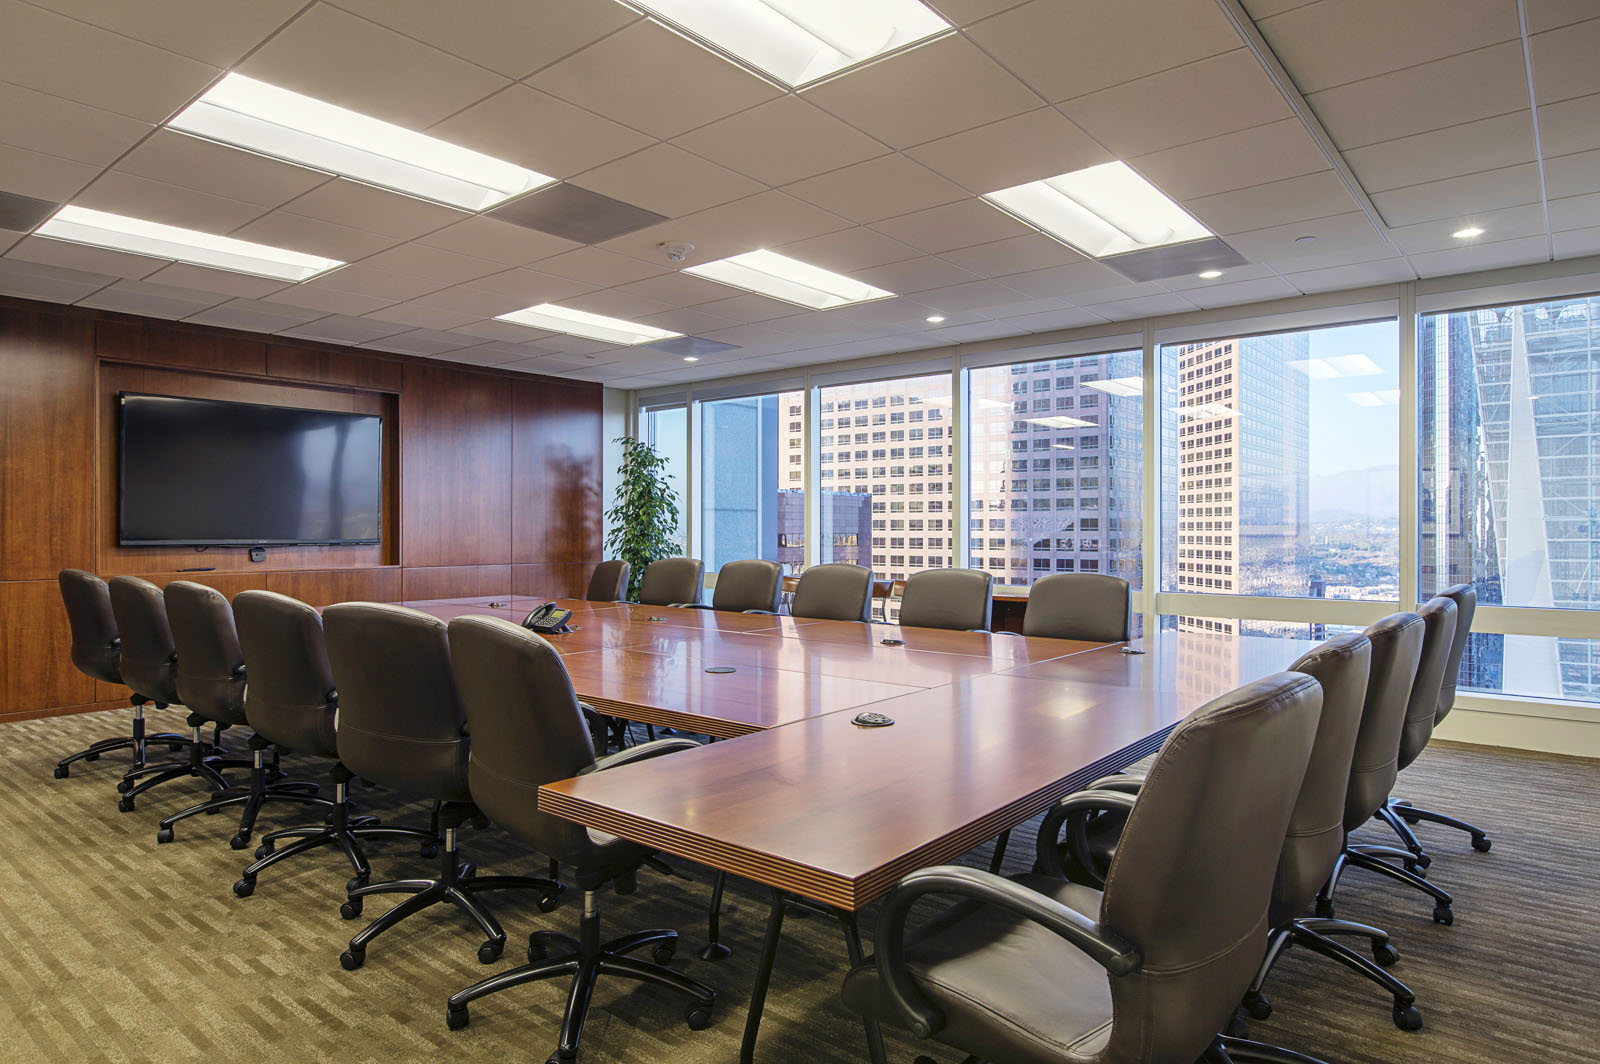 FINRA SECURITIES ARBITRATION CONFERENCE ROOM where investors recover losses due to stock fraud and broker misconduct